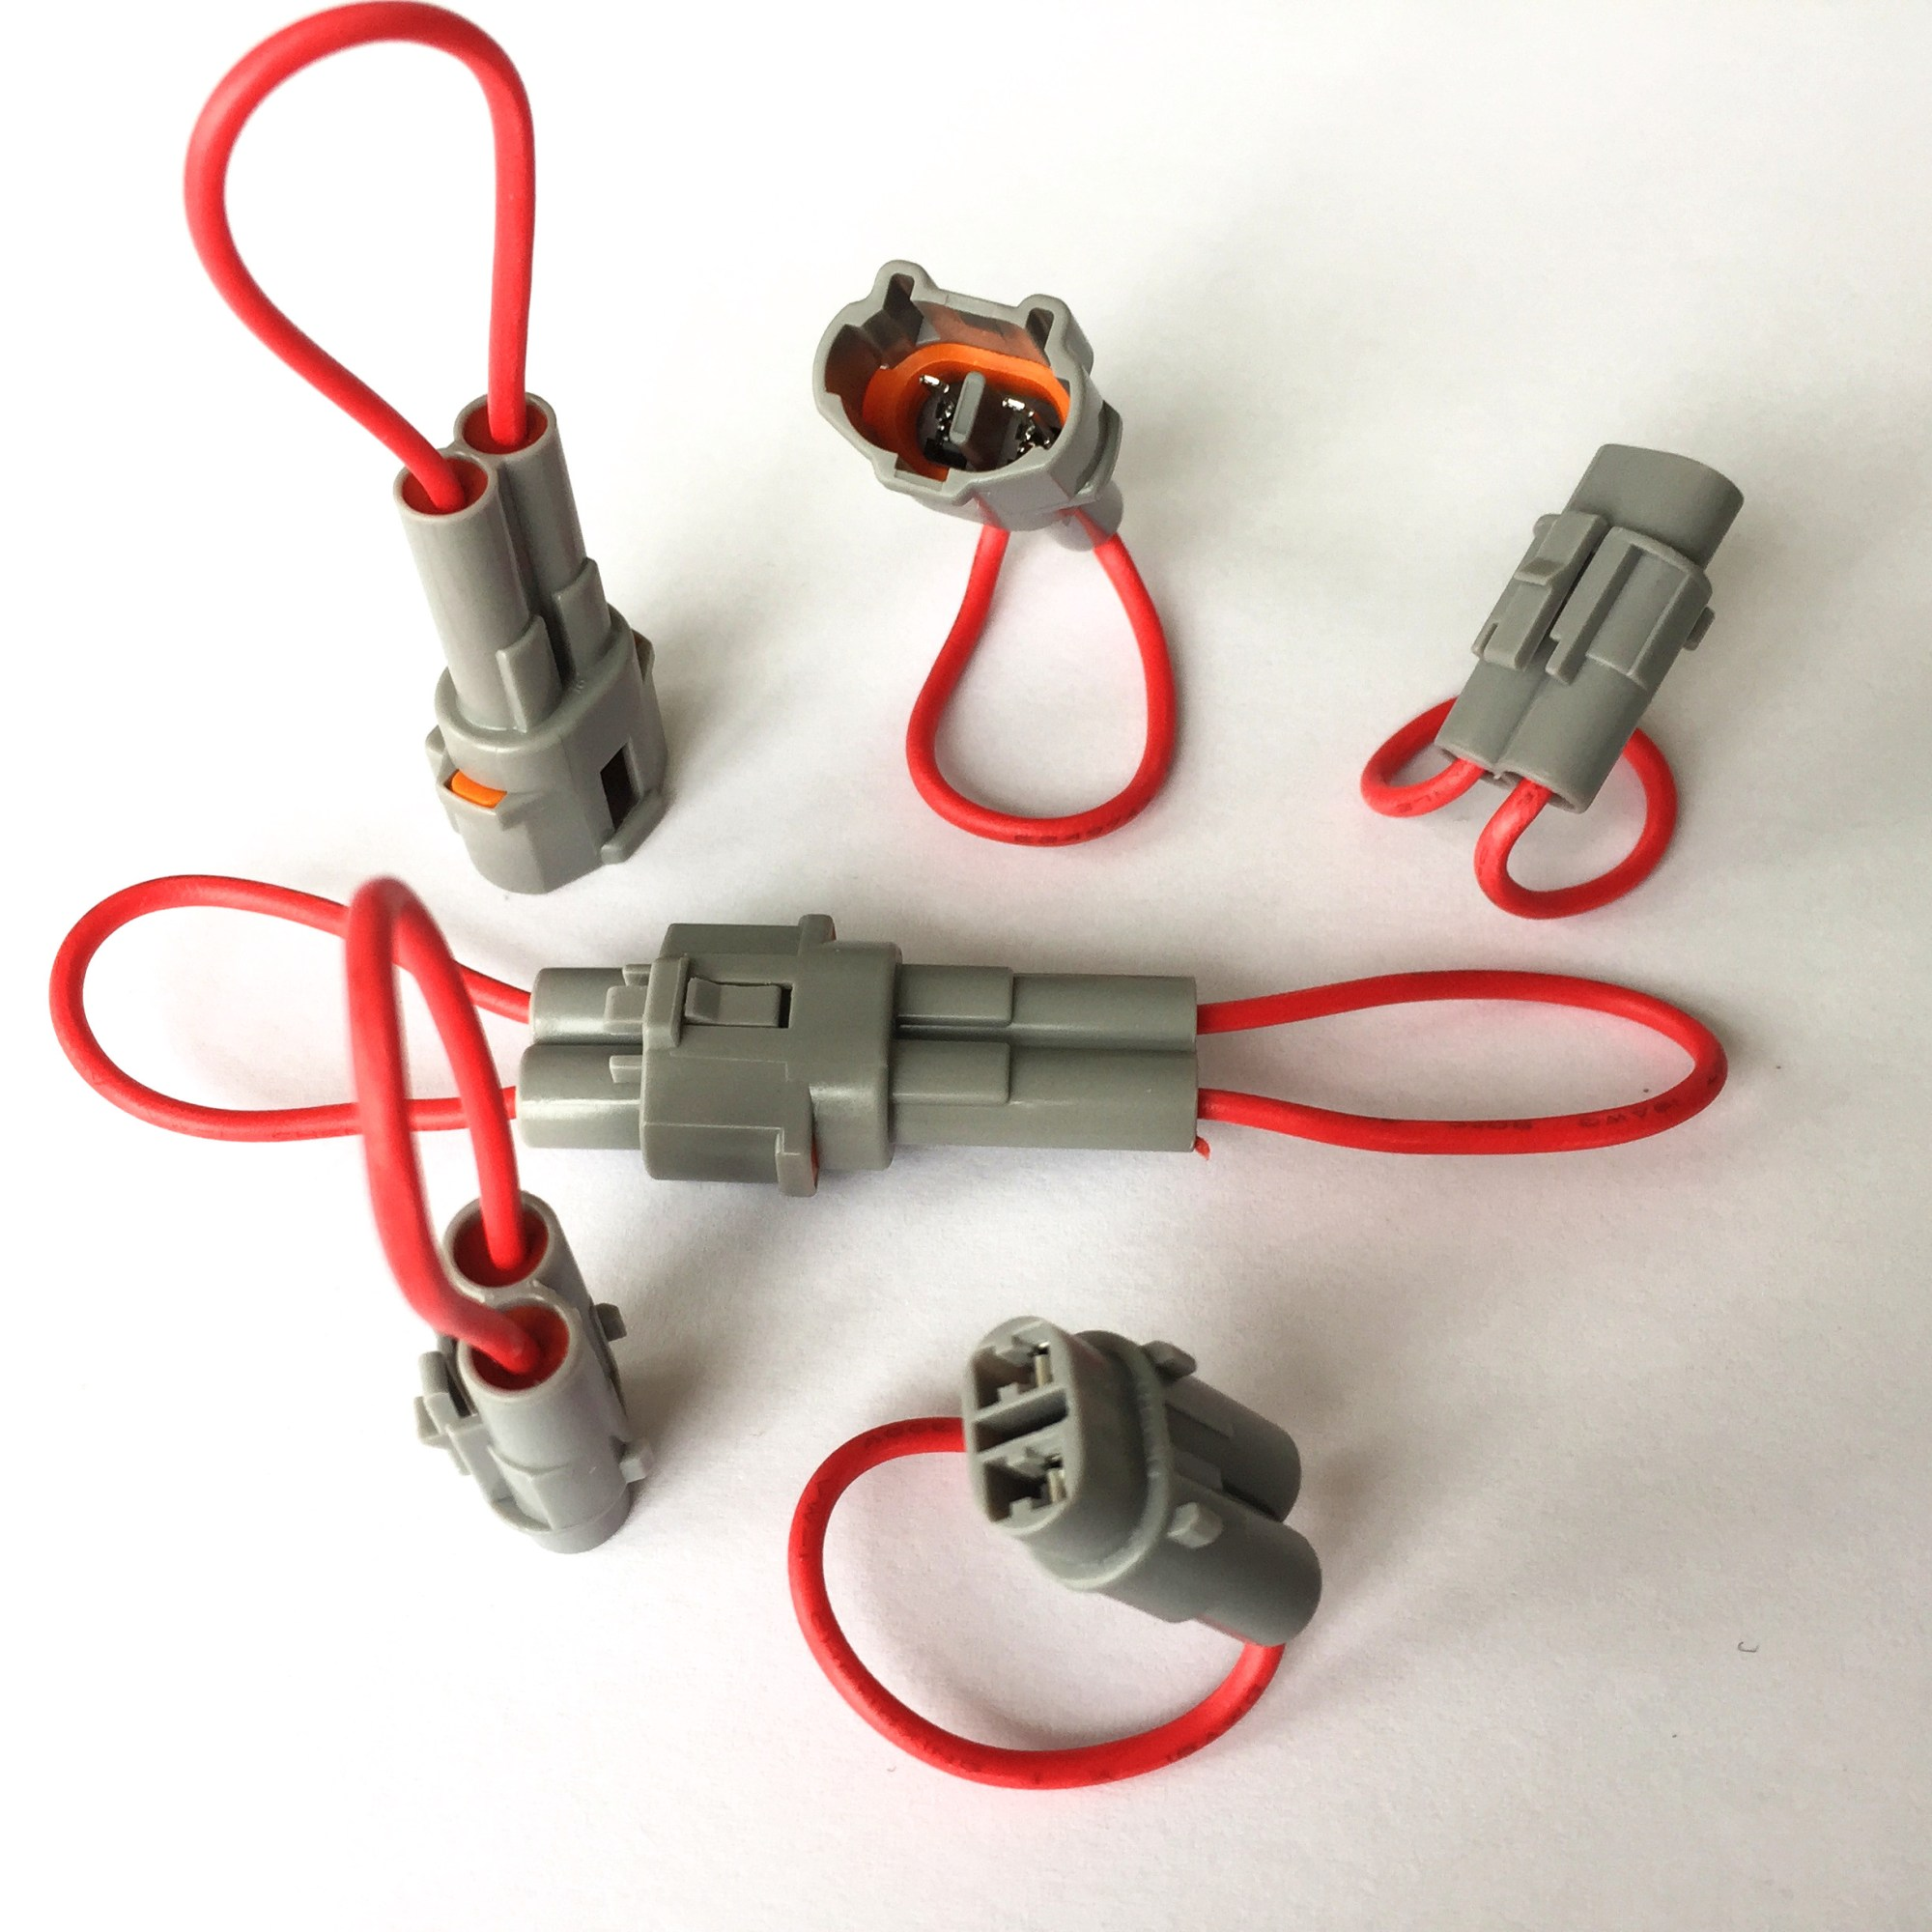 hight resolution of 2 pin sumitomoo 6180 2321 6187 2311 female male kit mt sealed automotive connector wire harness